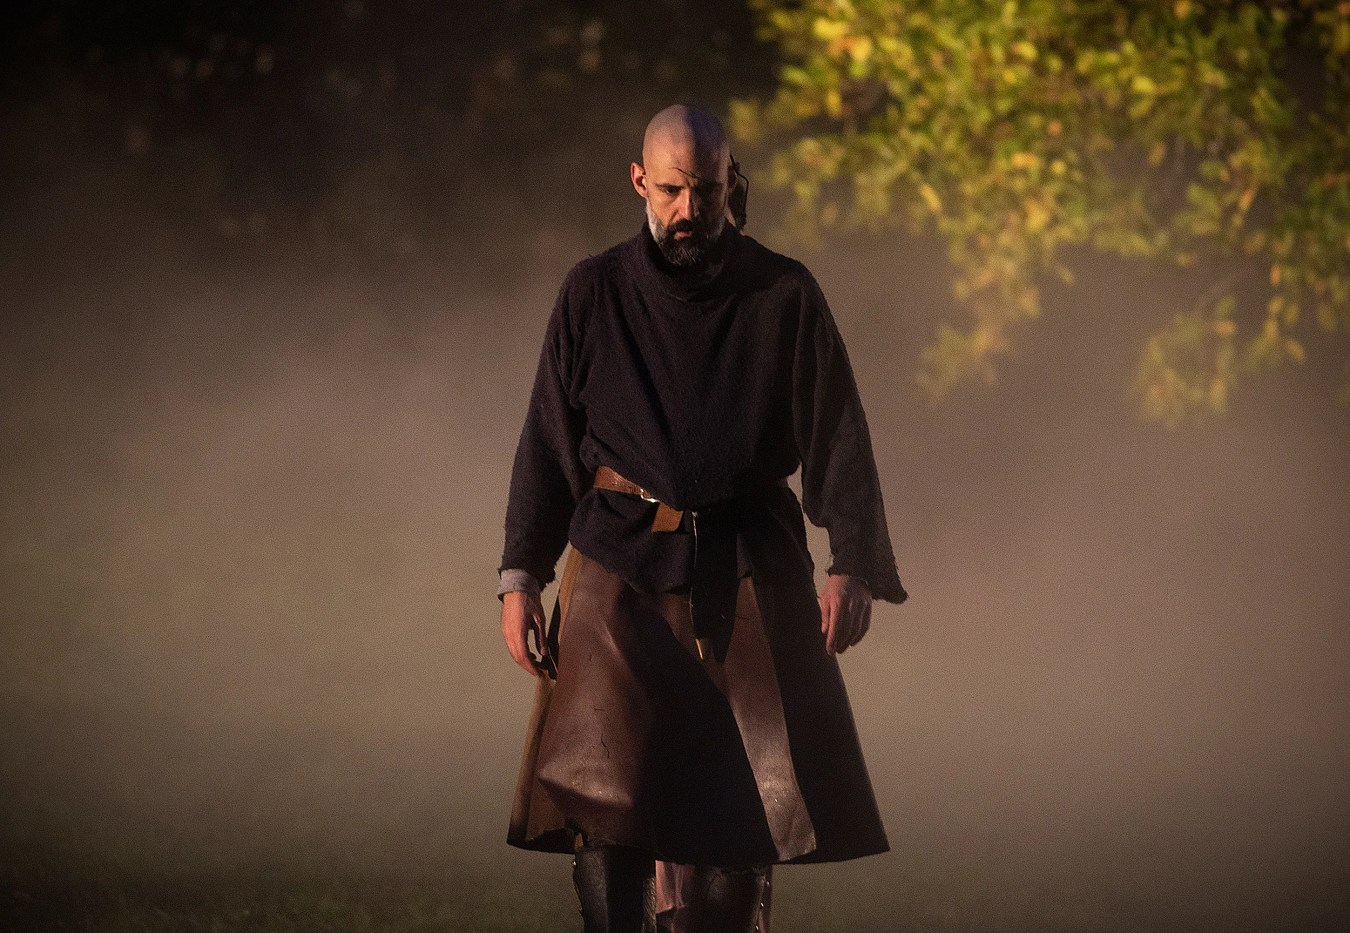 Macbeth (played by Nael Nacer).